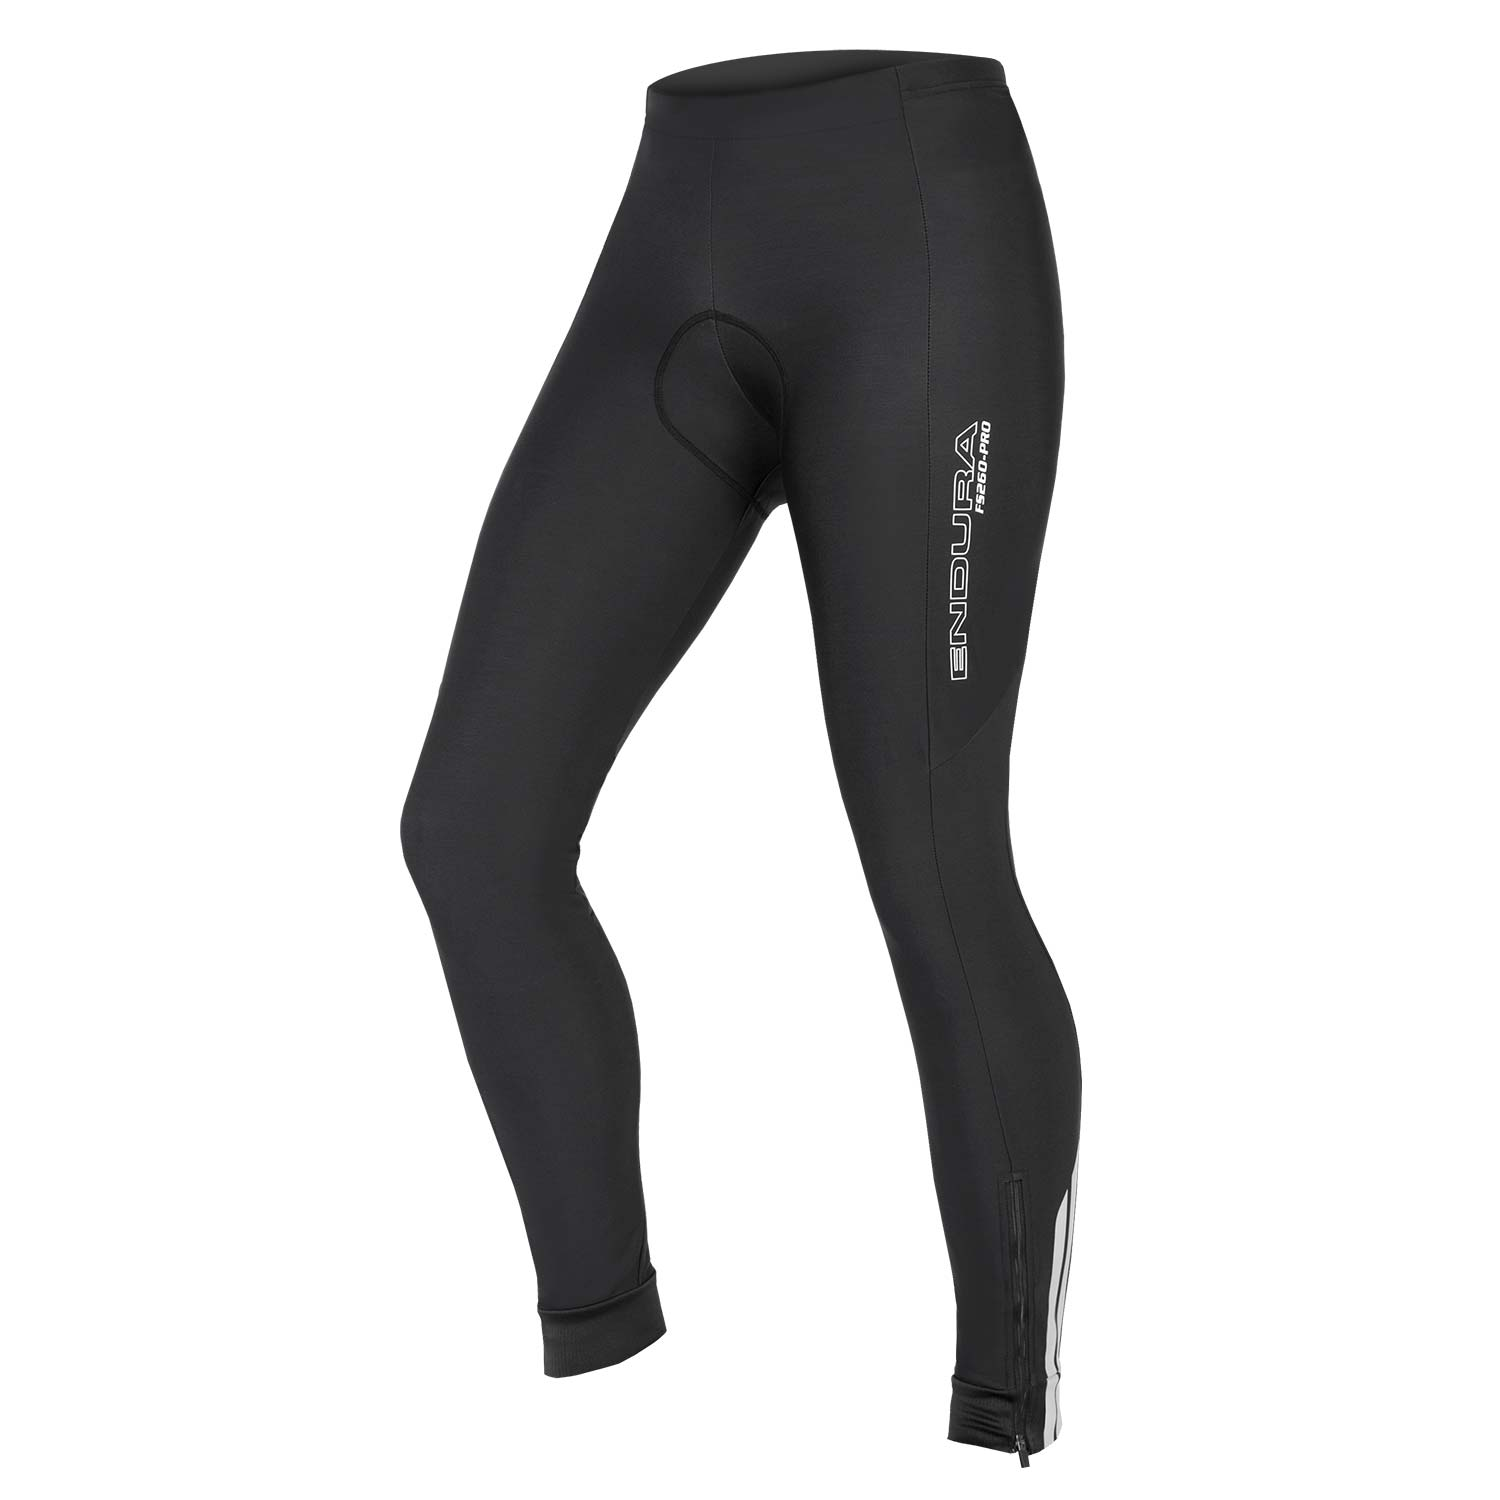 Wms FS260-Pro Thermo Tight  Black